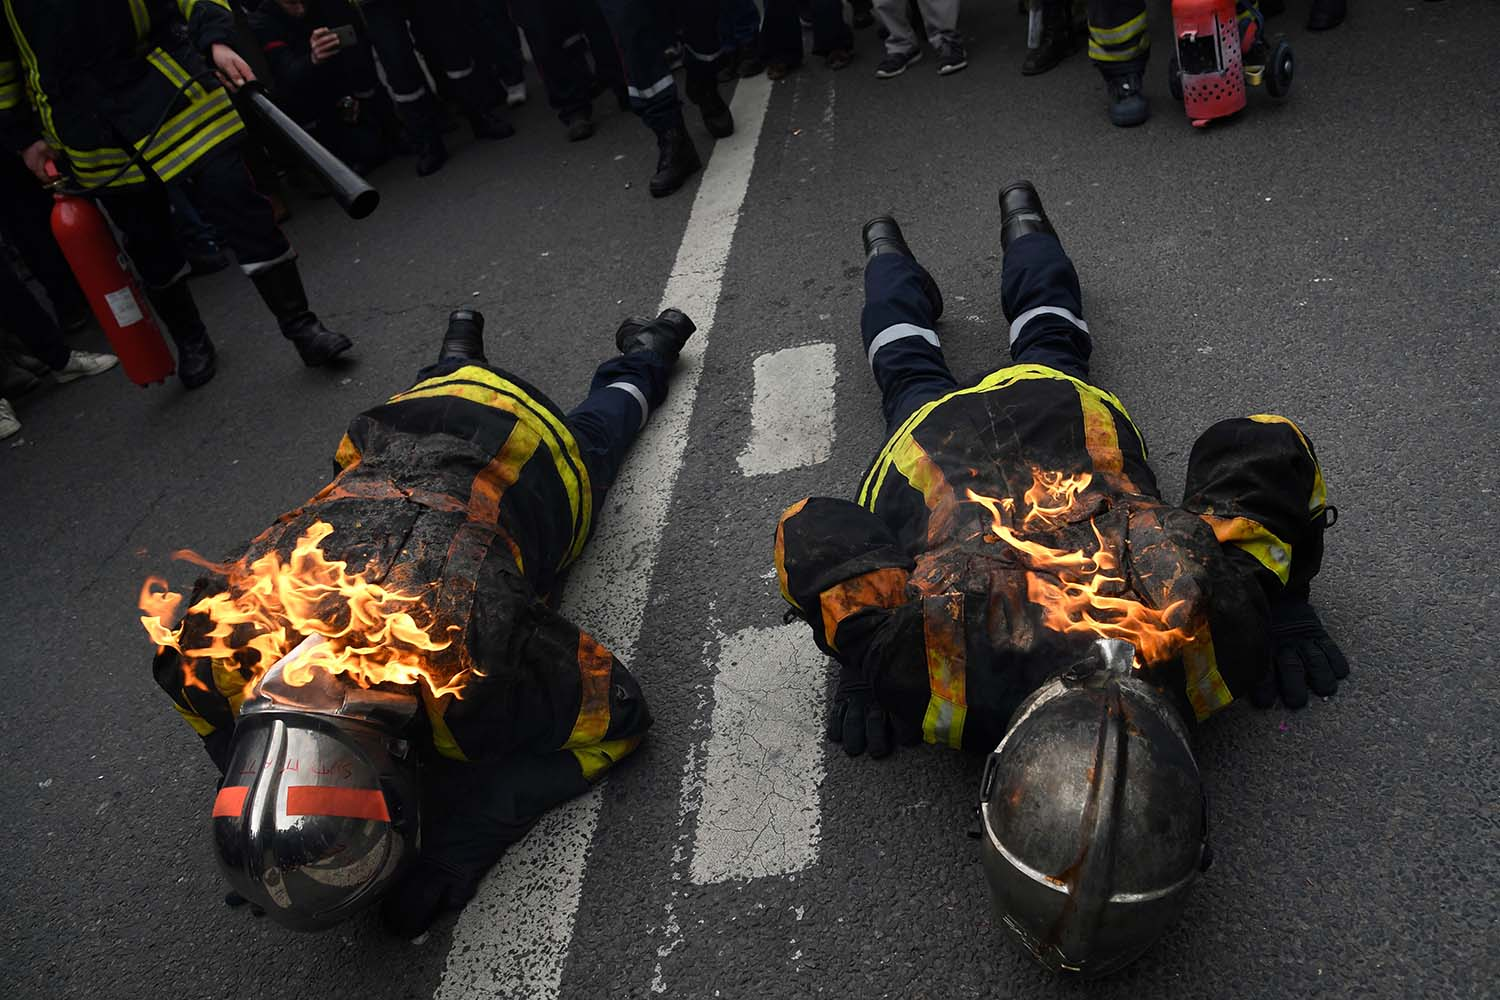 Two firefighters set alight lie on the ground as another prepares to extinguish them as they take part in a demonstration to protest the French government's plan to overhaul the country's retirement system in Paris, on Jan. 28. BERTRAND GUAY/AFP via Getty Images